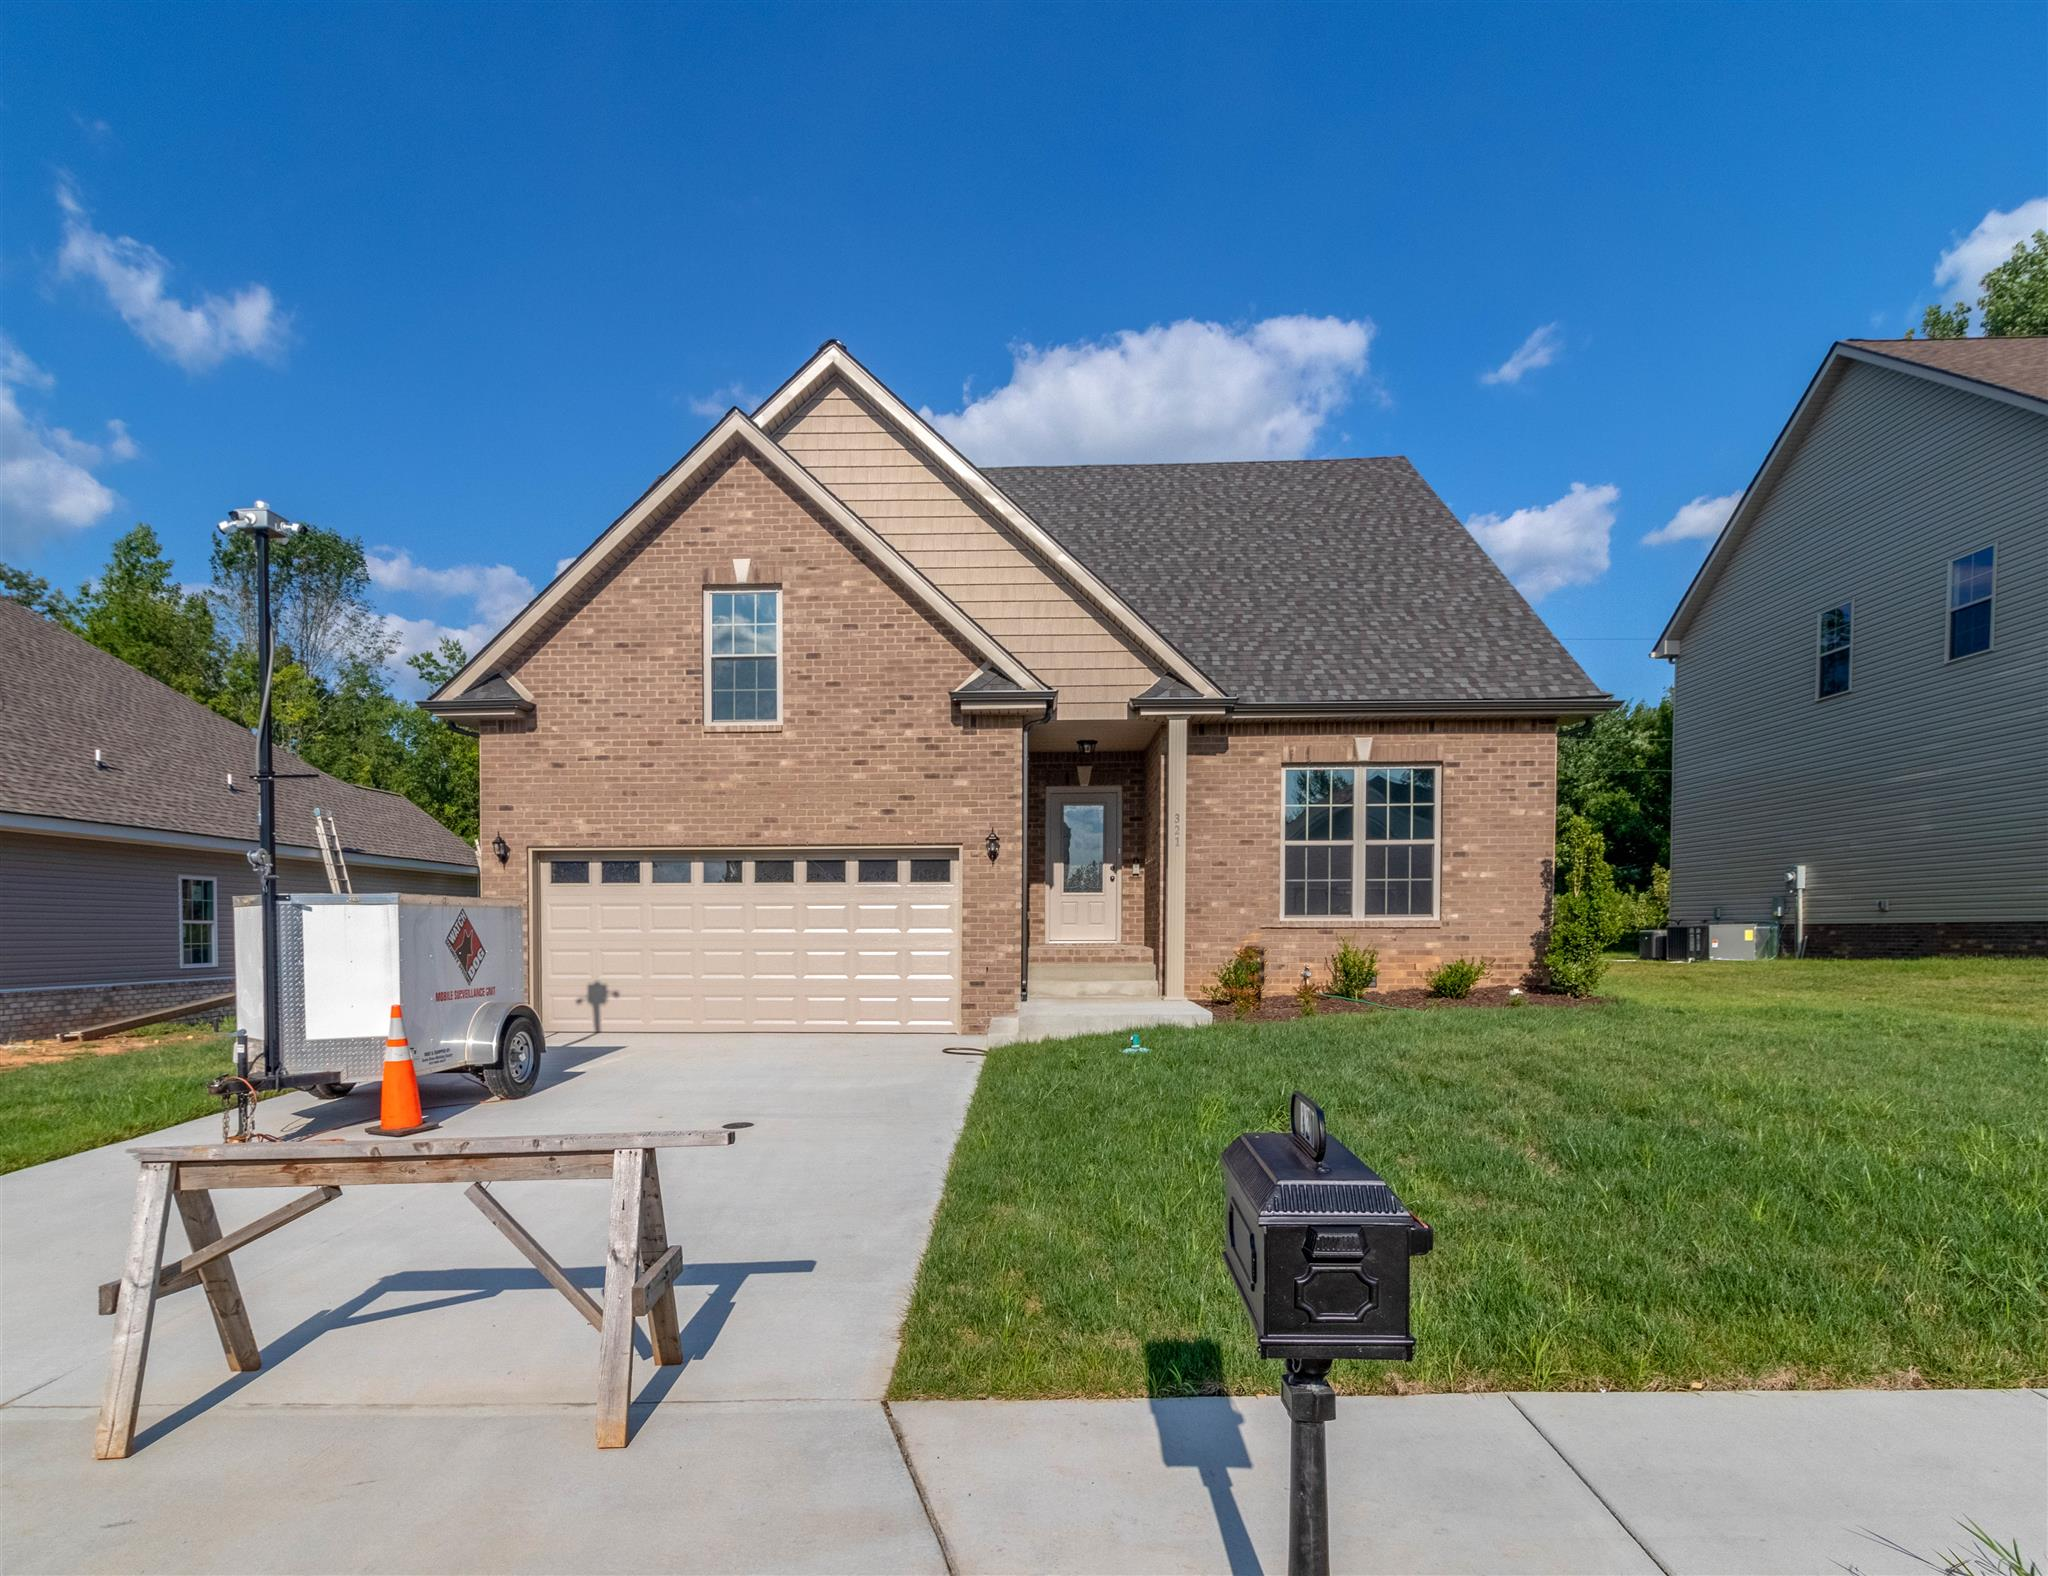 321 Chase Dr, Clarksville, TN 37043 - Clarksville, TN real estate listing